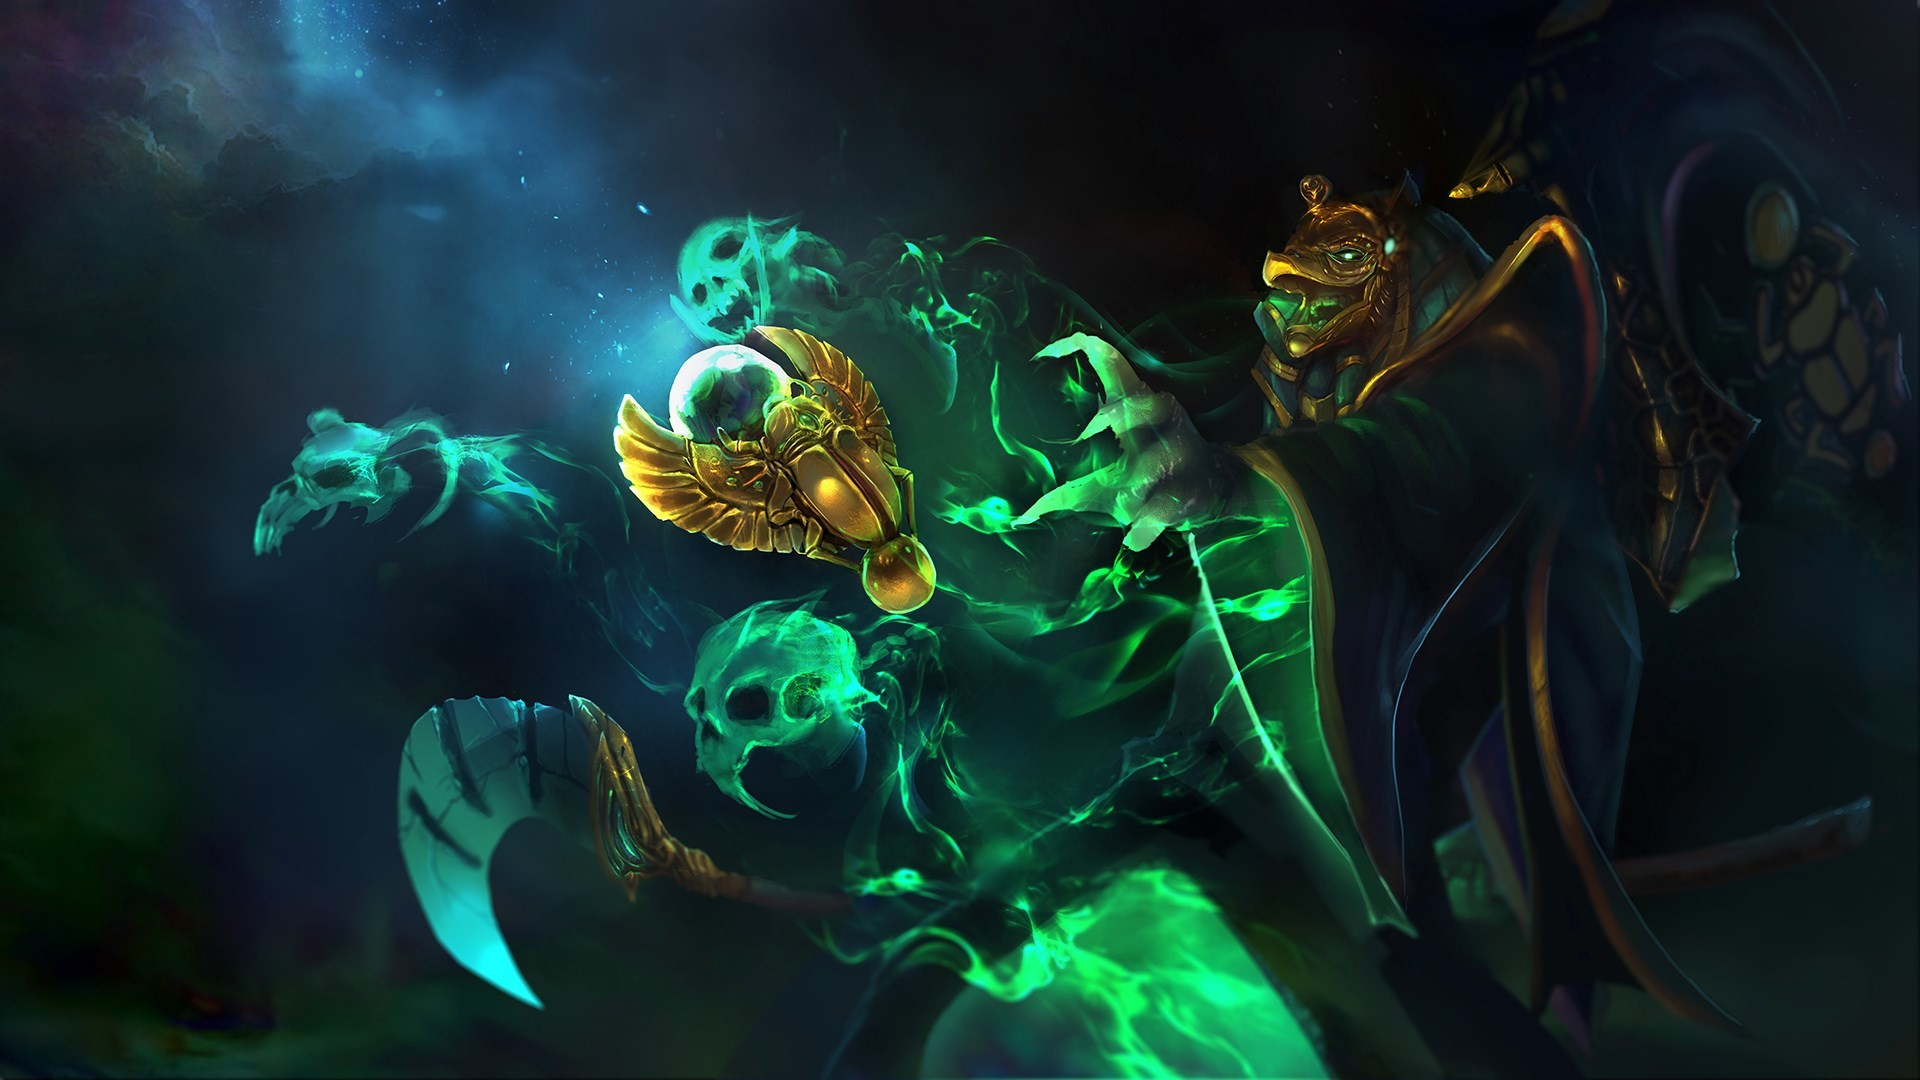 1920x1080 dota 2 hd widescreen wallpapers for desktop